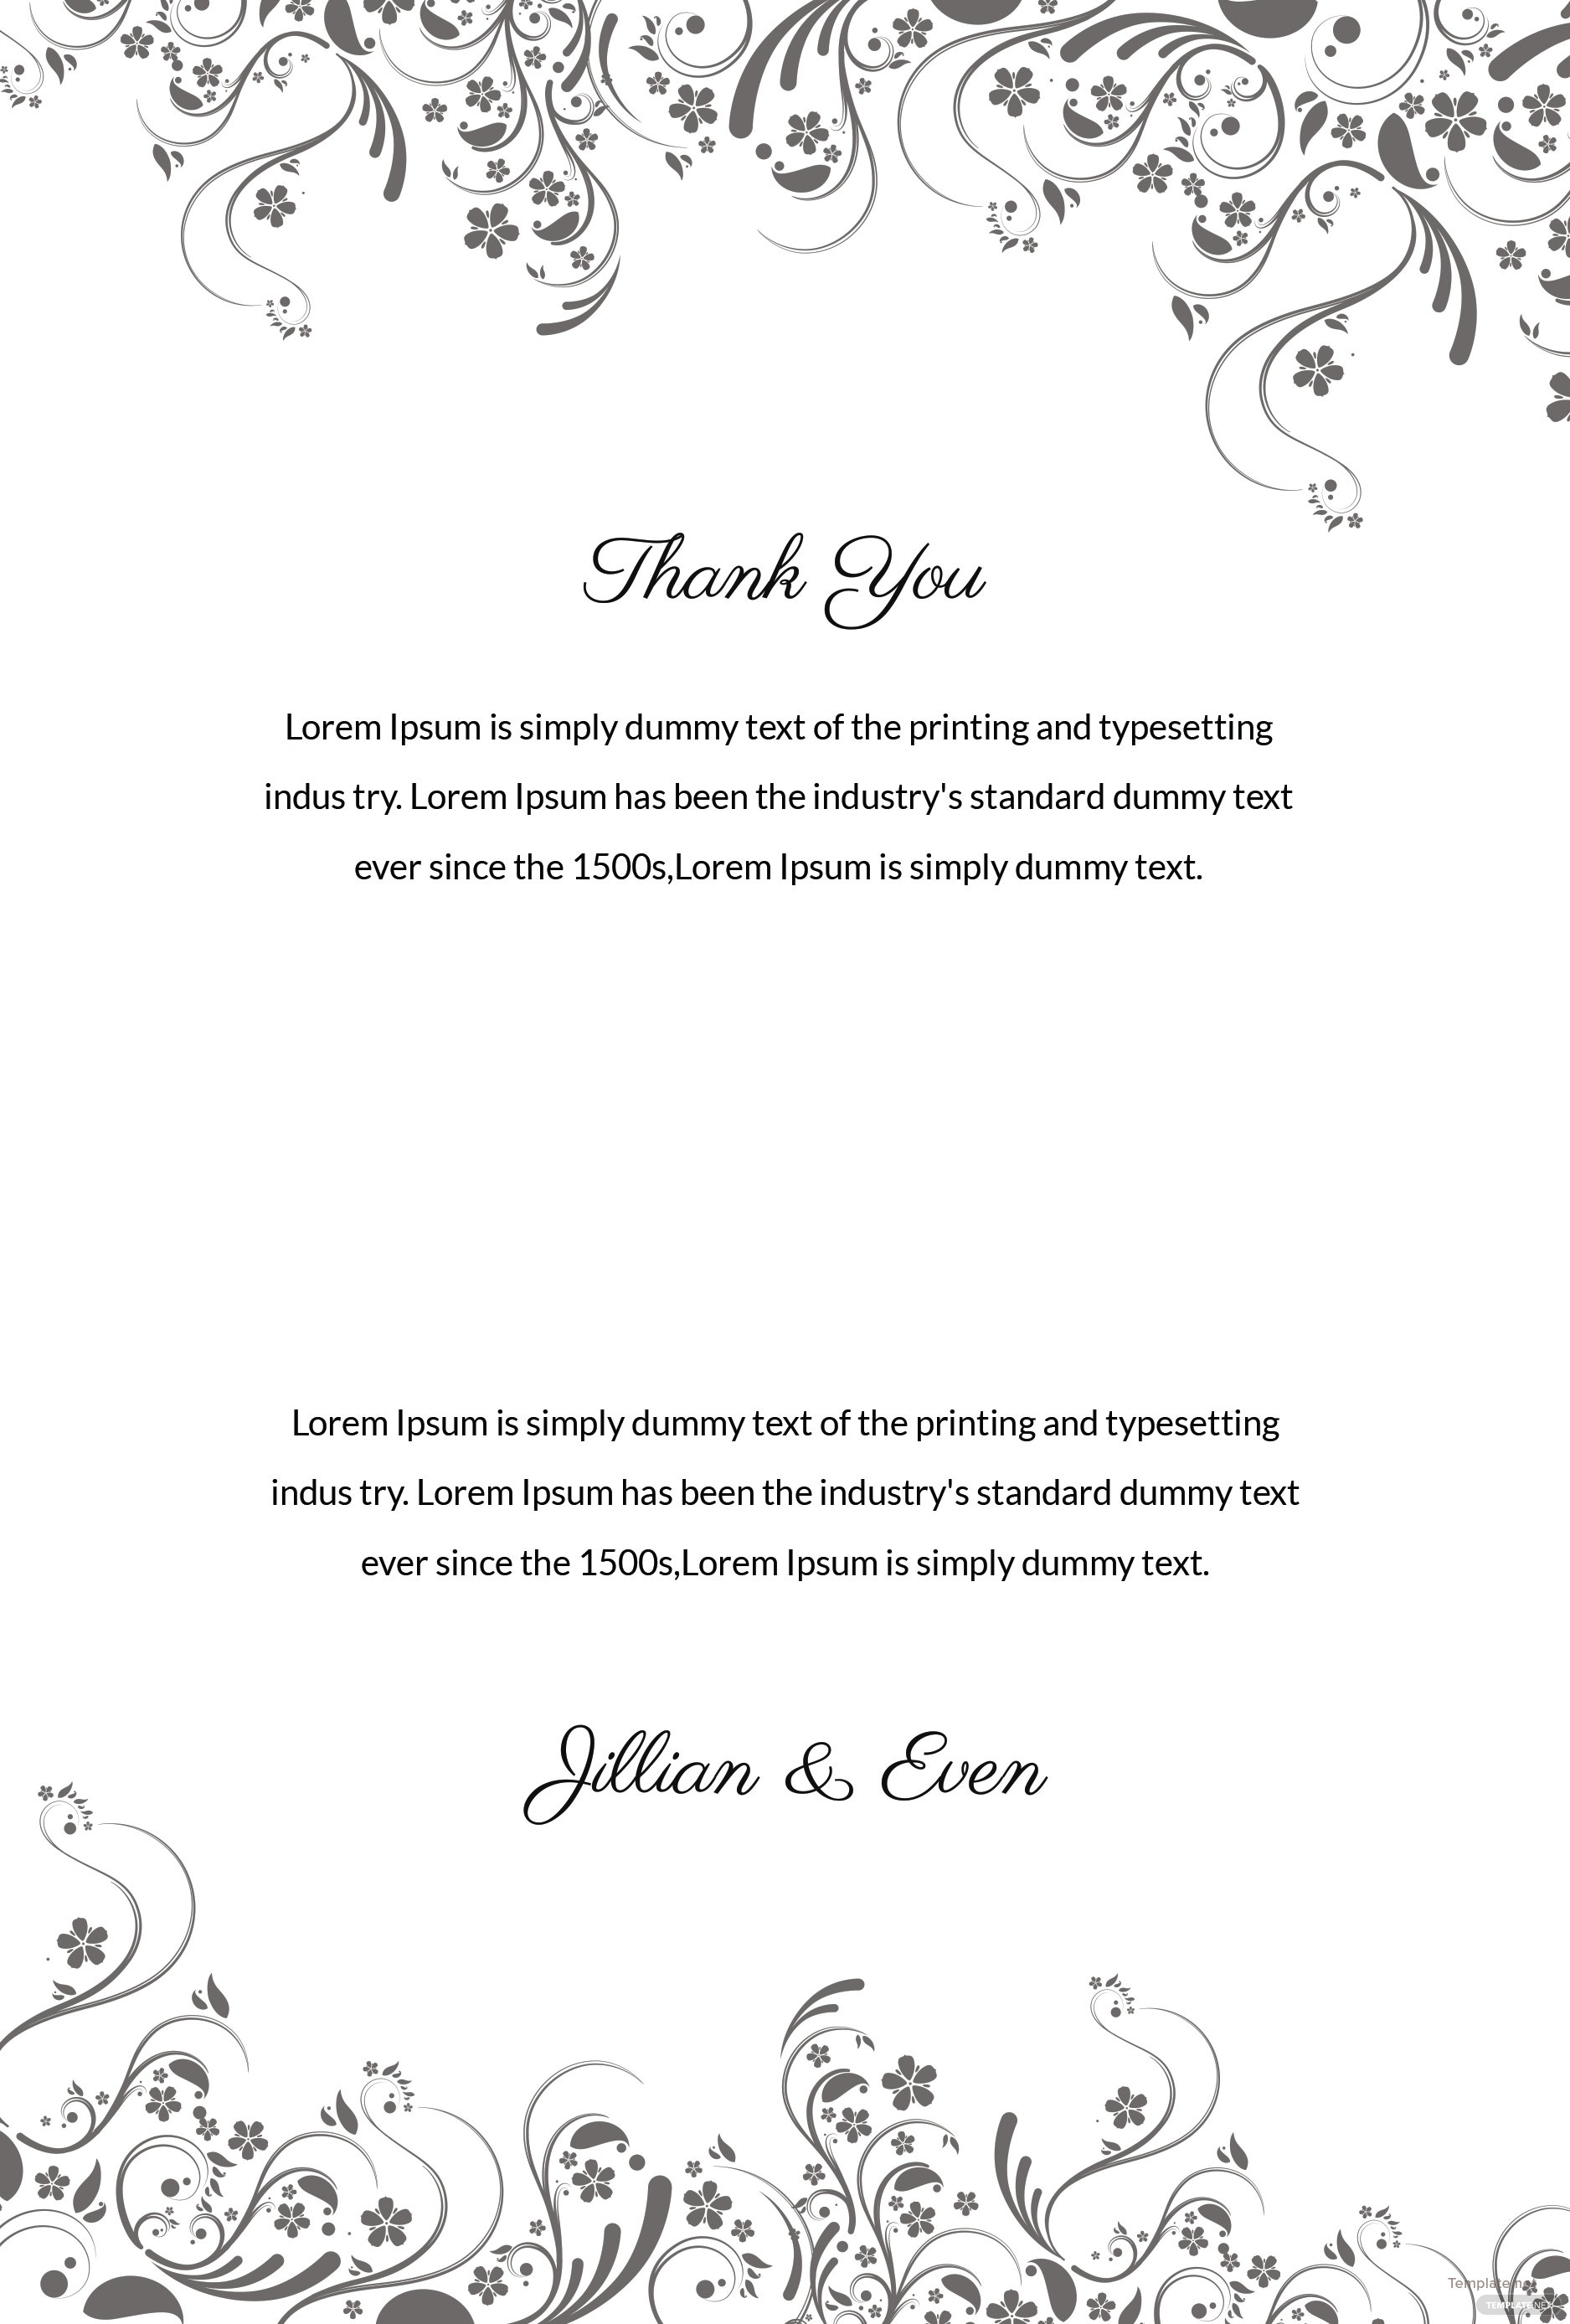 Free Wedding Thank You Card Template in Adobe Photoshop Illustrator